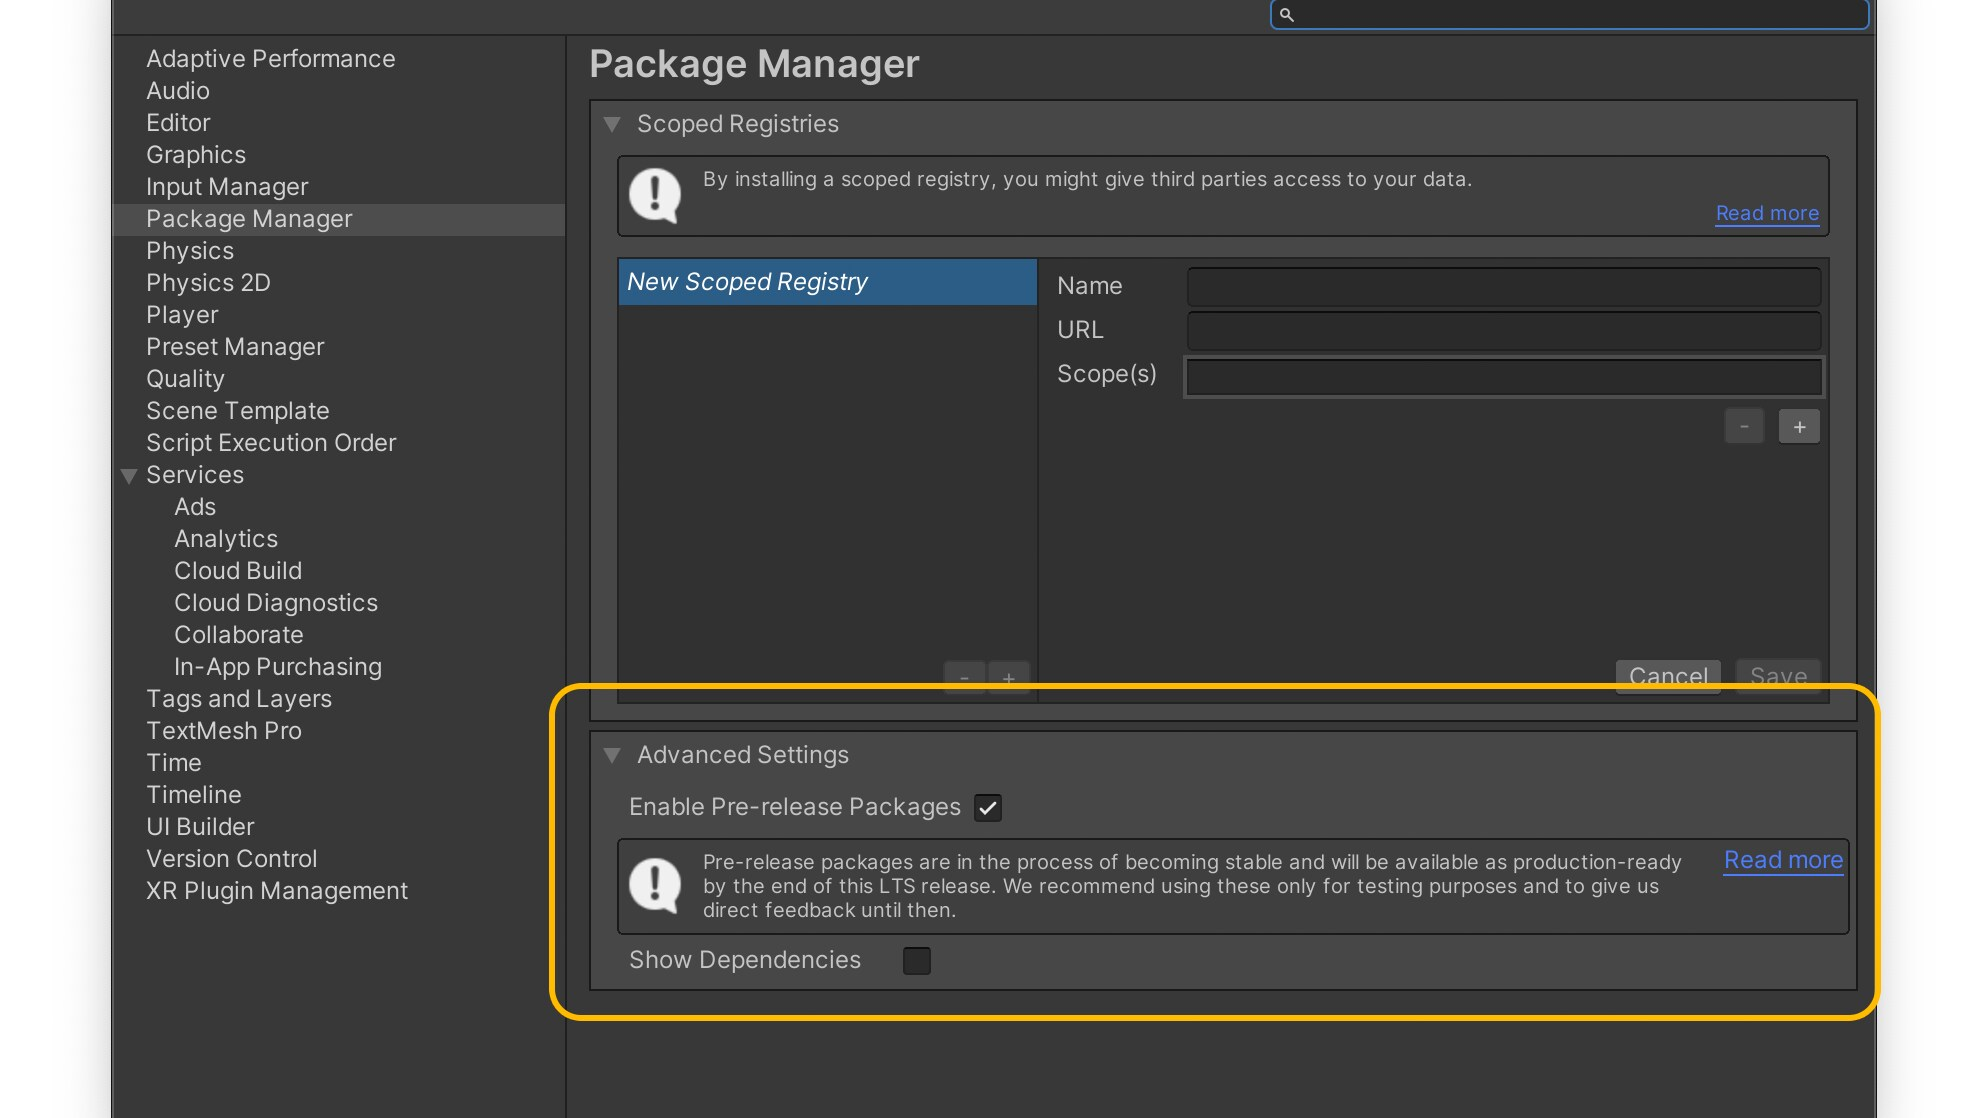 Screenshot showing how to enable pre-release packages